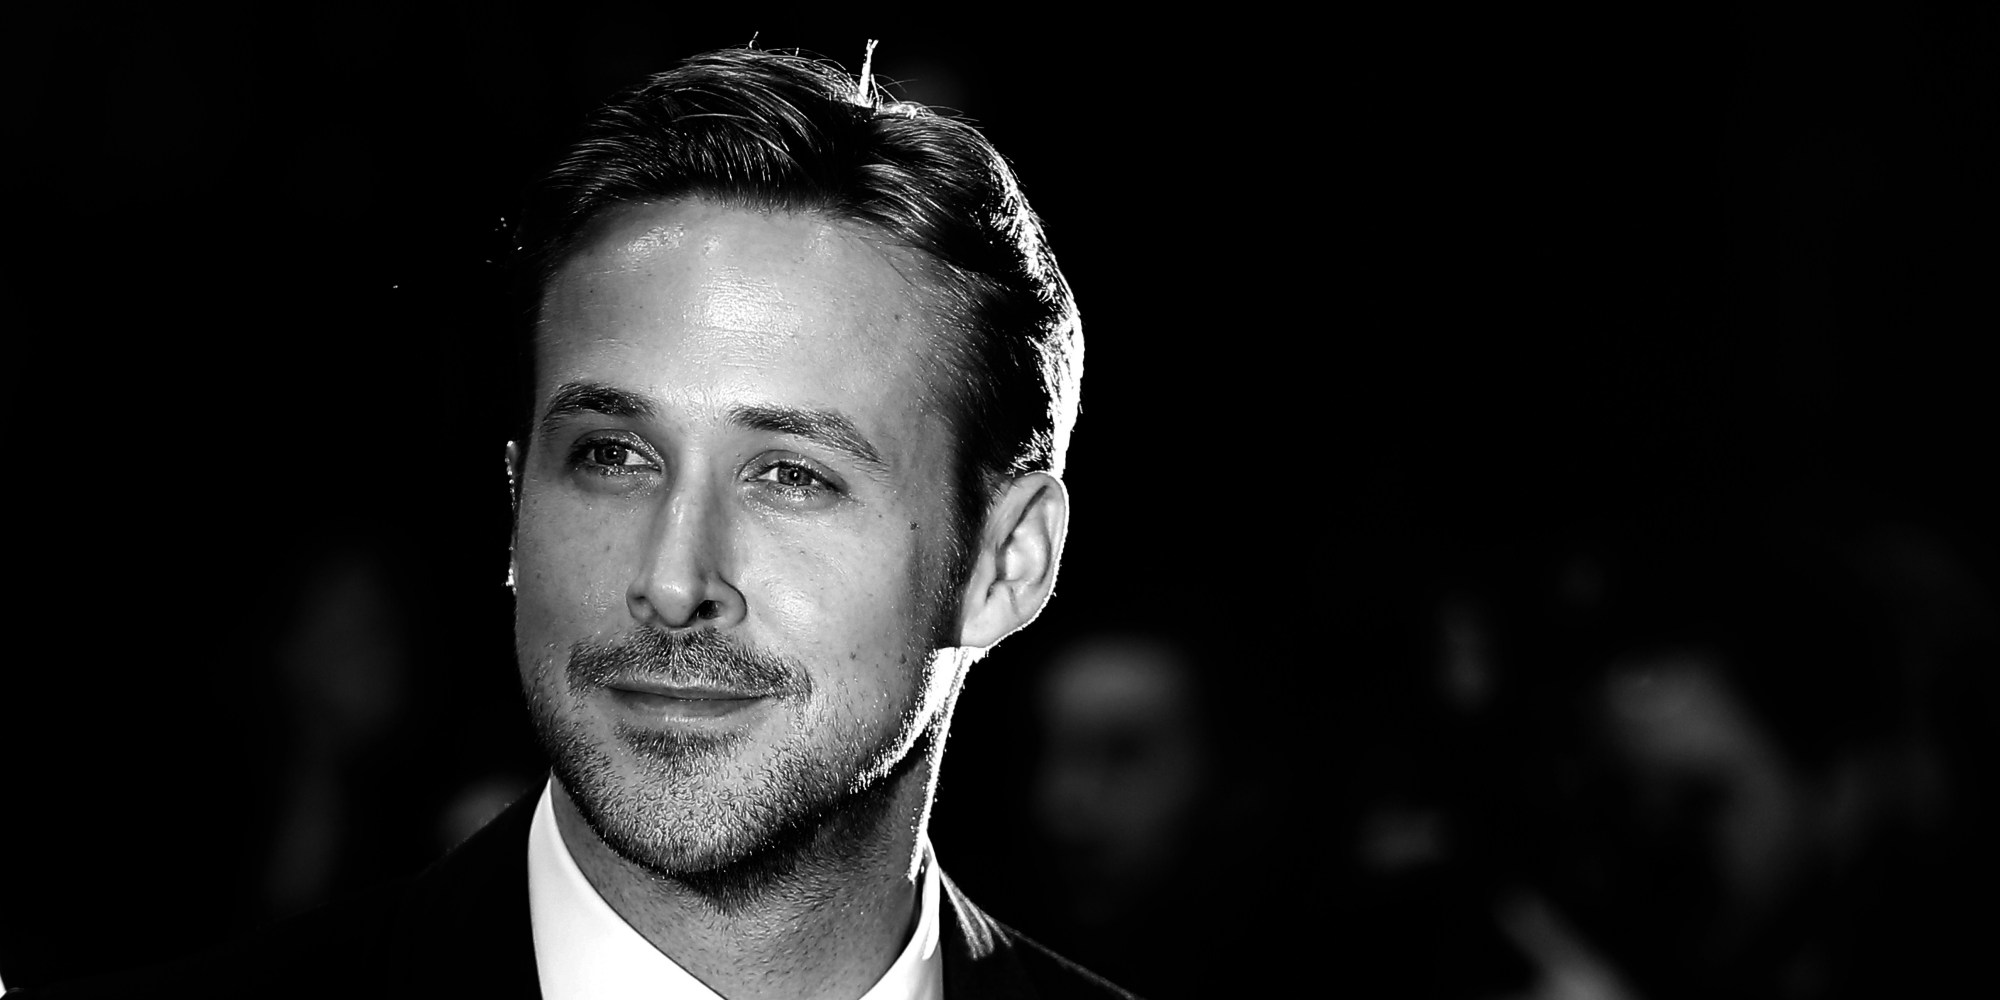 Ryan Gosling Facts That Will Make You Say 'Hey Boy'